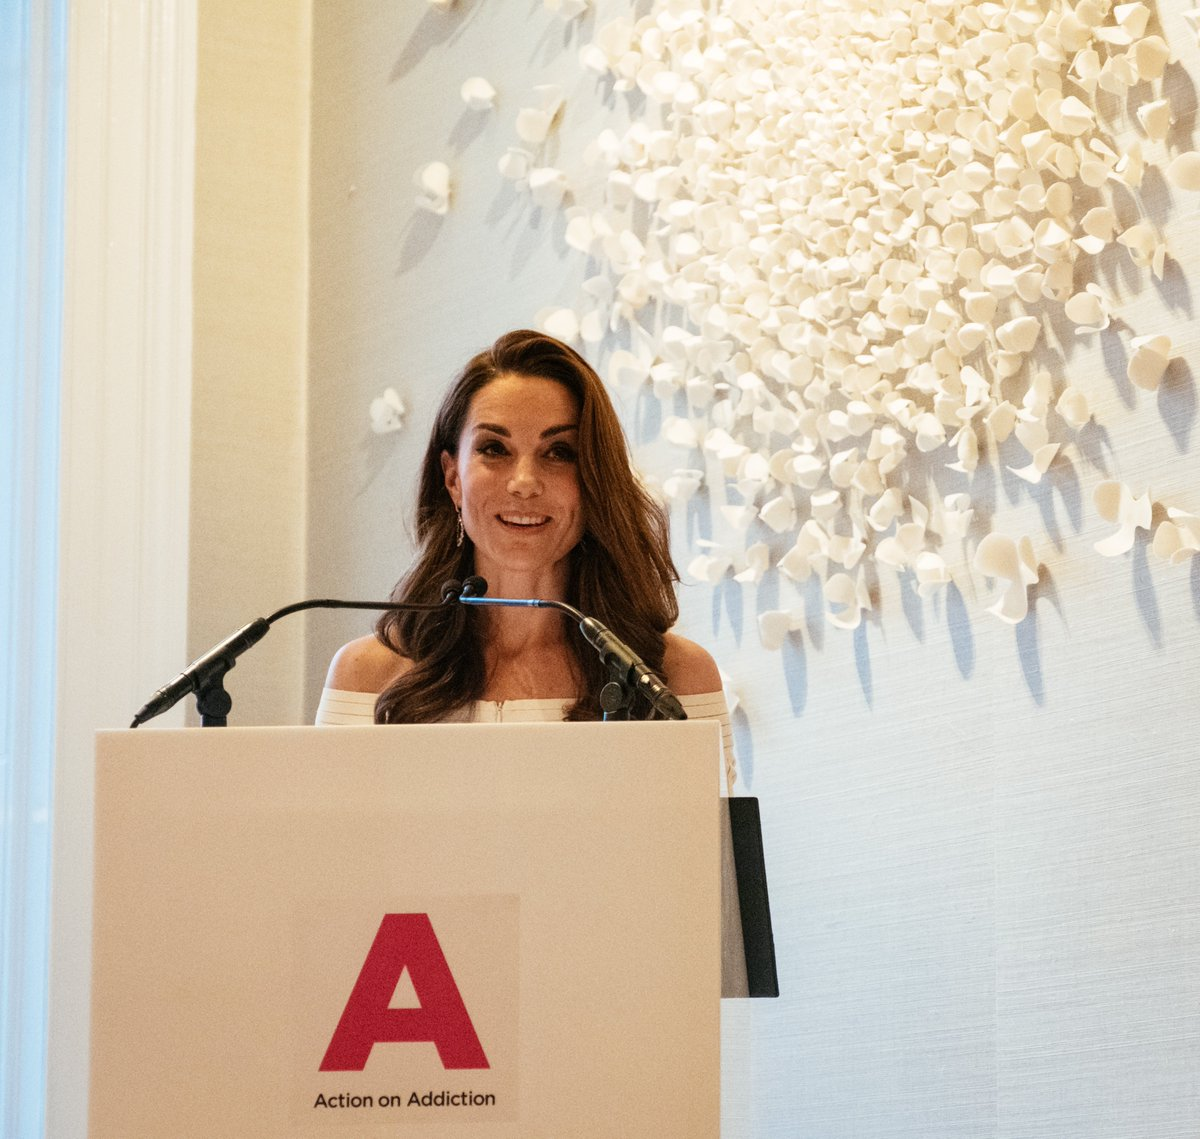 Kensington Palace Releases Kate Middleton's Full Speech from this Week's Gala Dinner and…Whoa